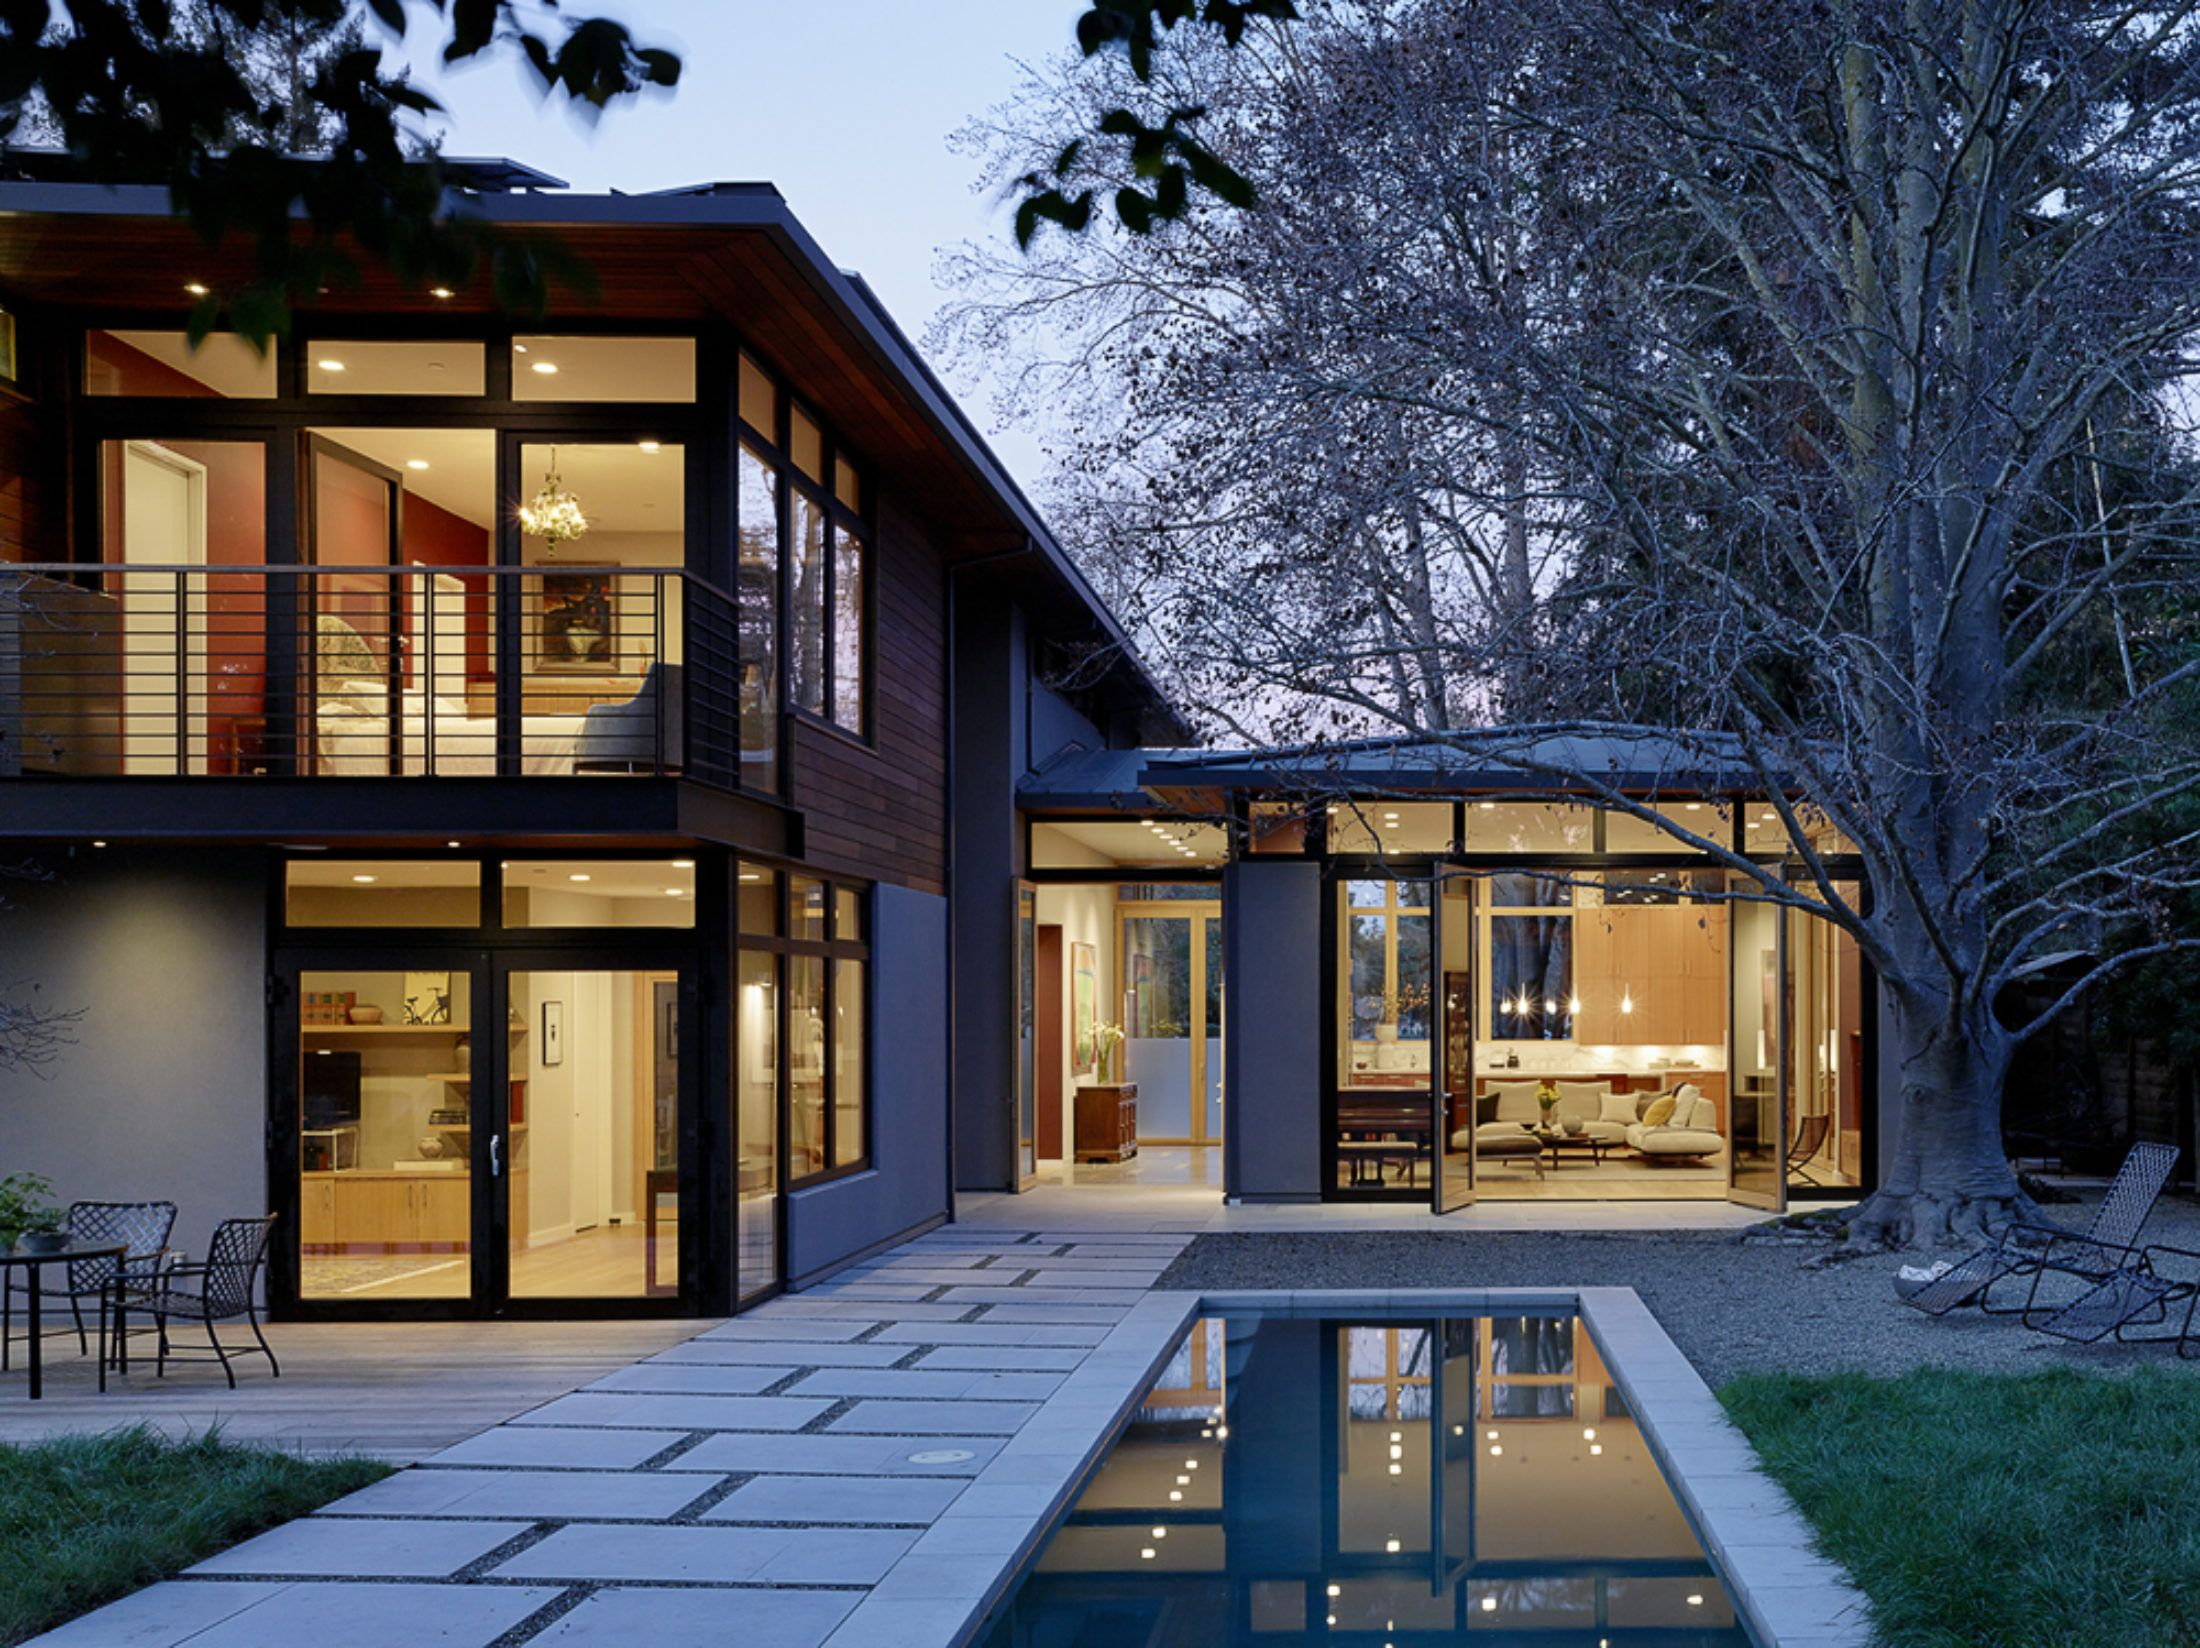 Butler Armsden Architects Architect House In Nature House Cladding